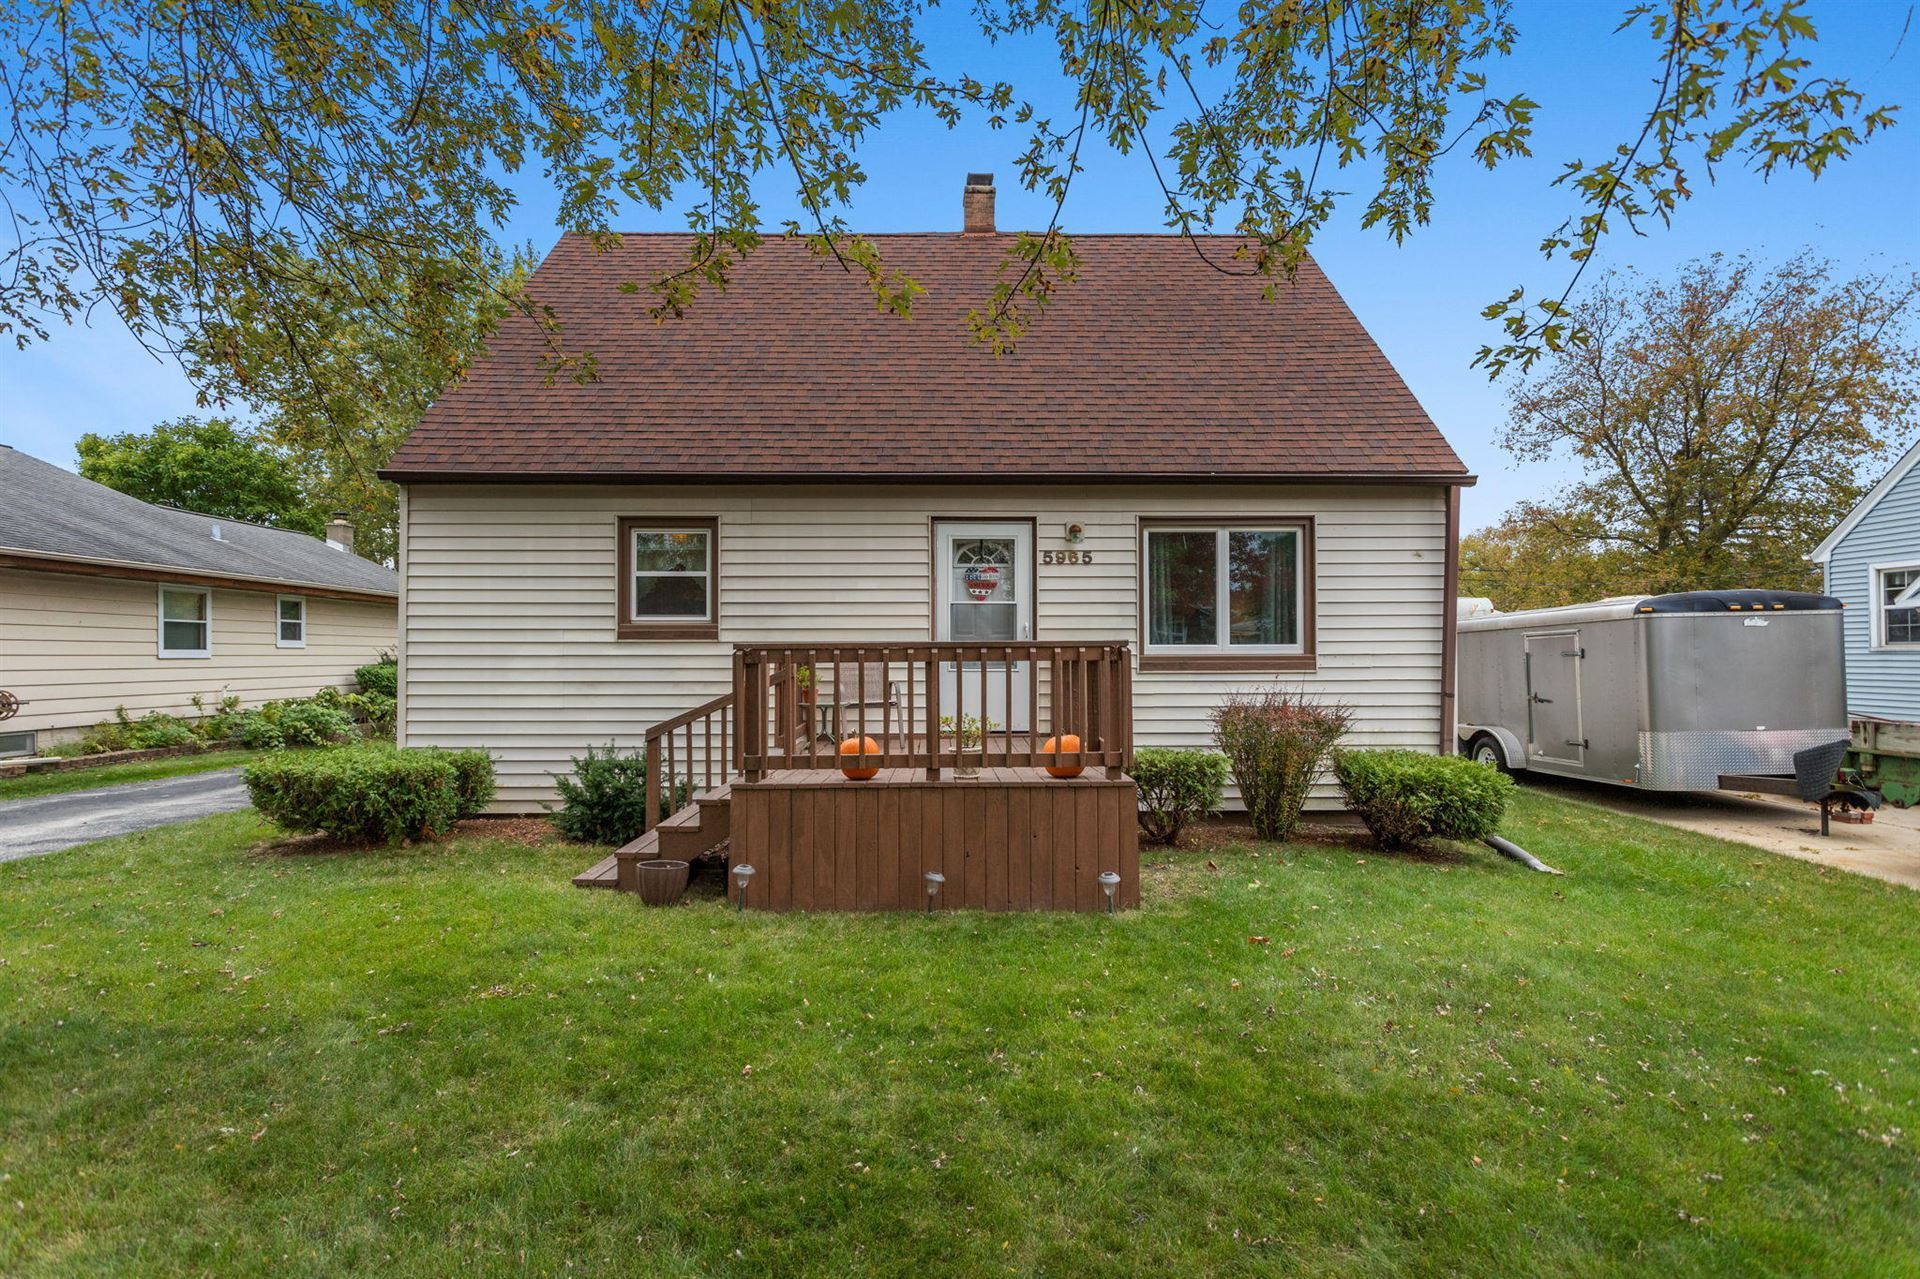 5965 S Phillips St, Greenfield, WI 53221 - #: 1715651